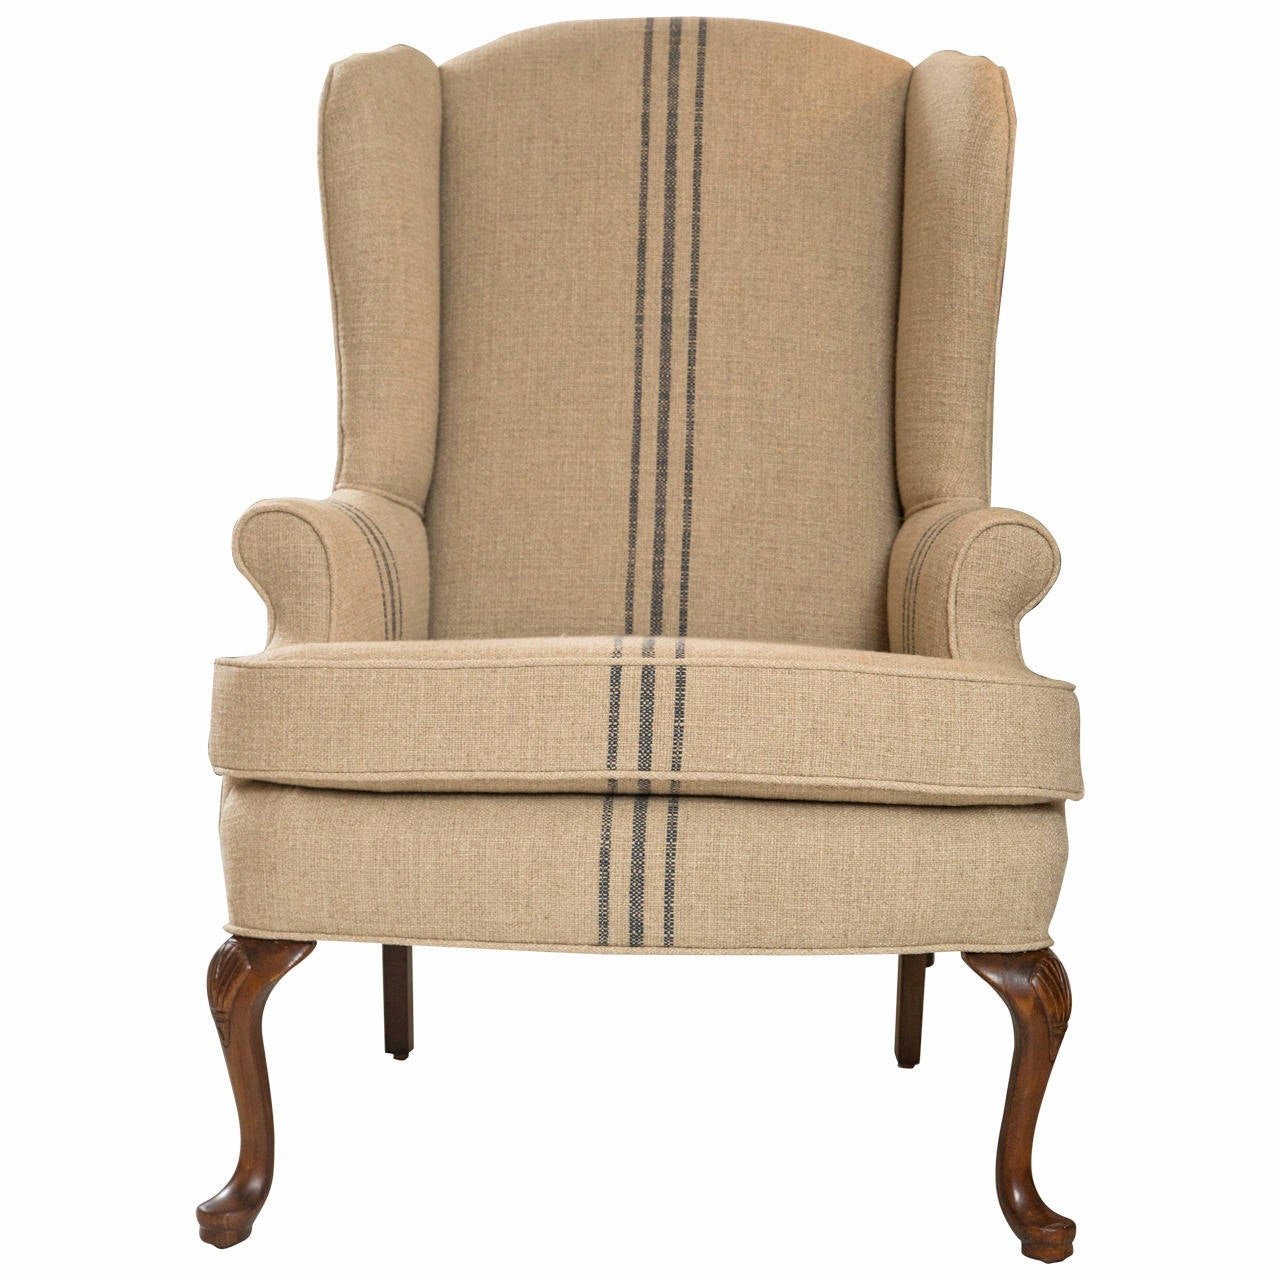 classic mid century wing chair at 1stdibs